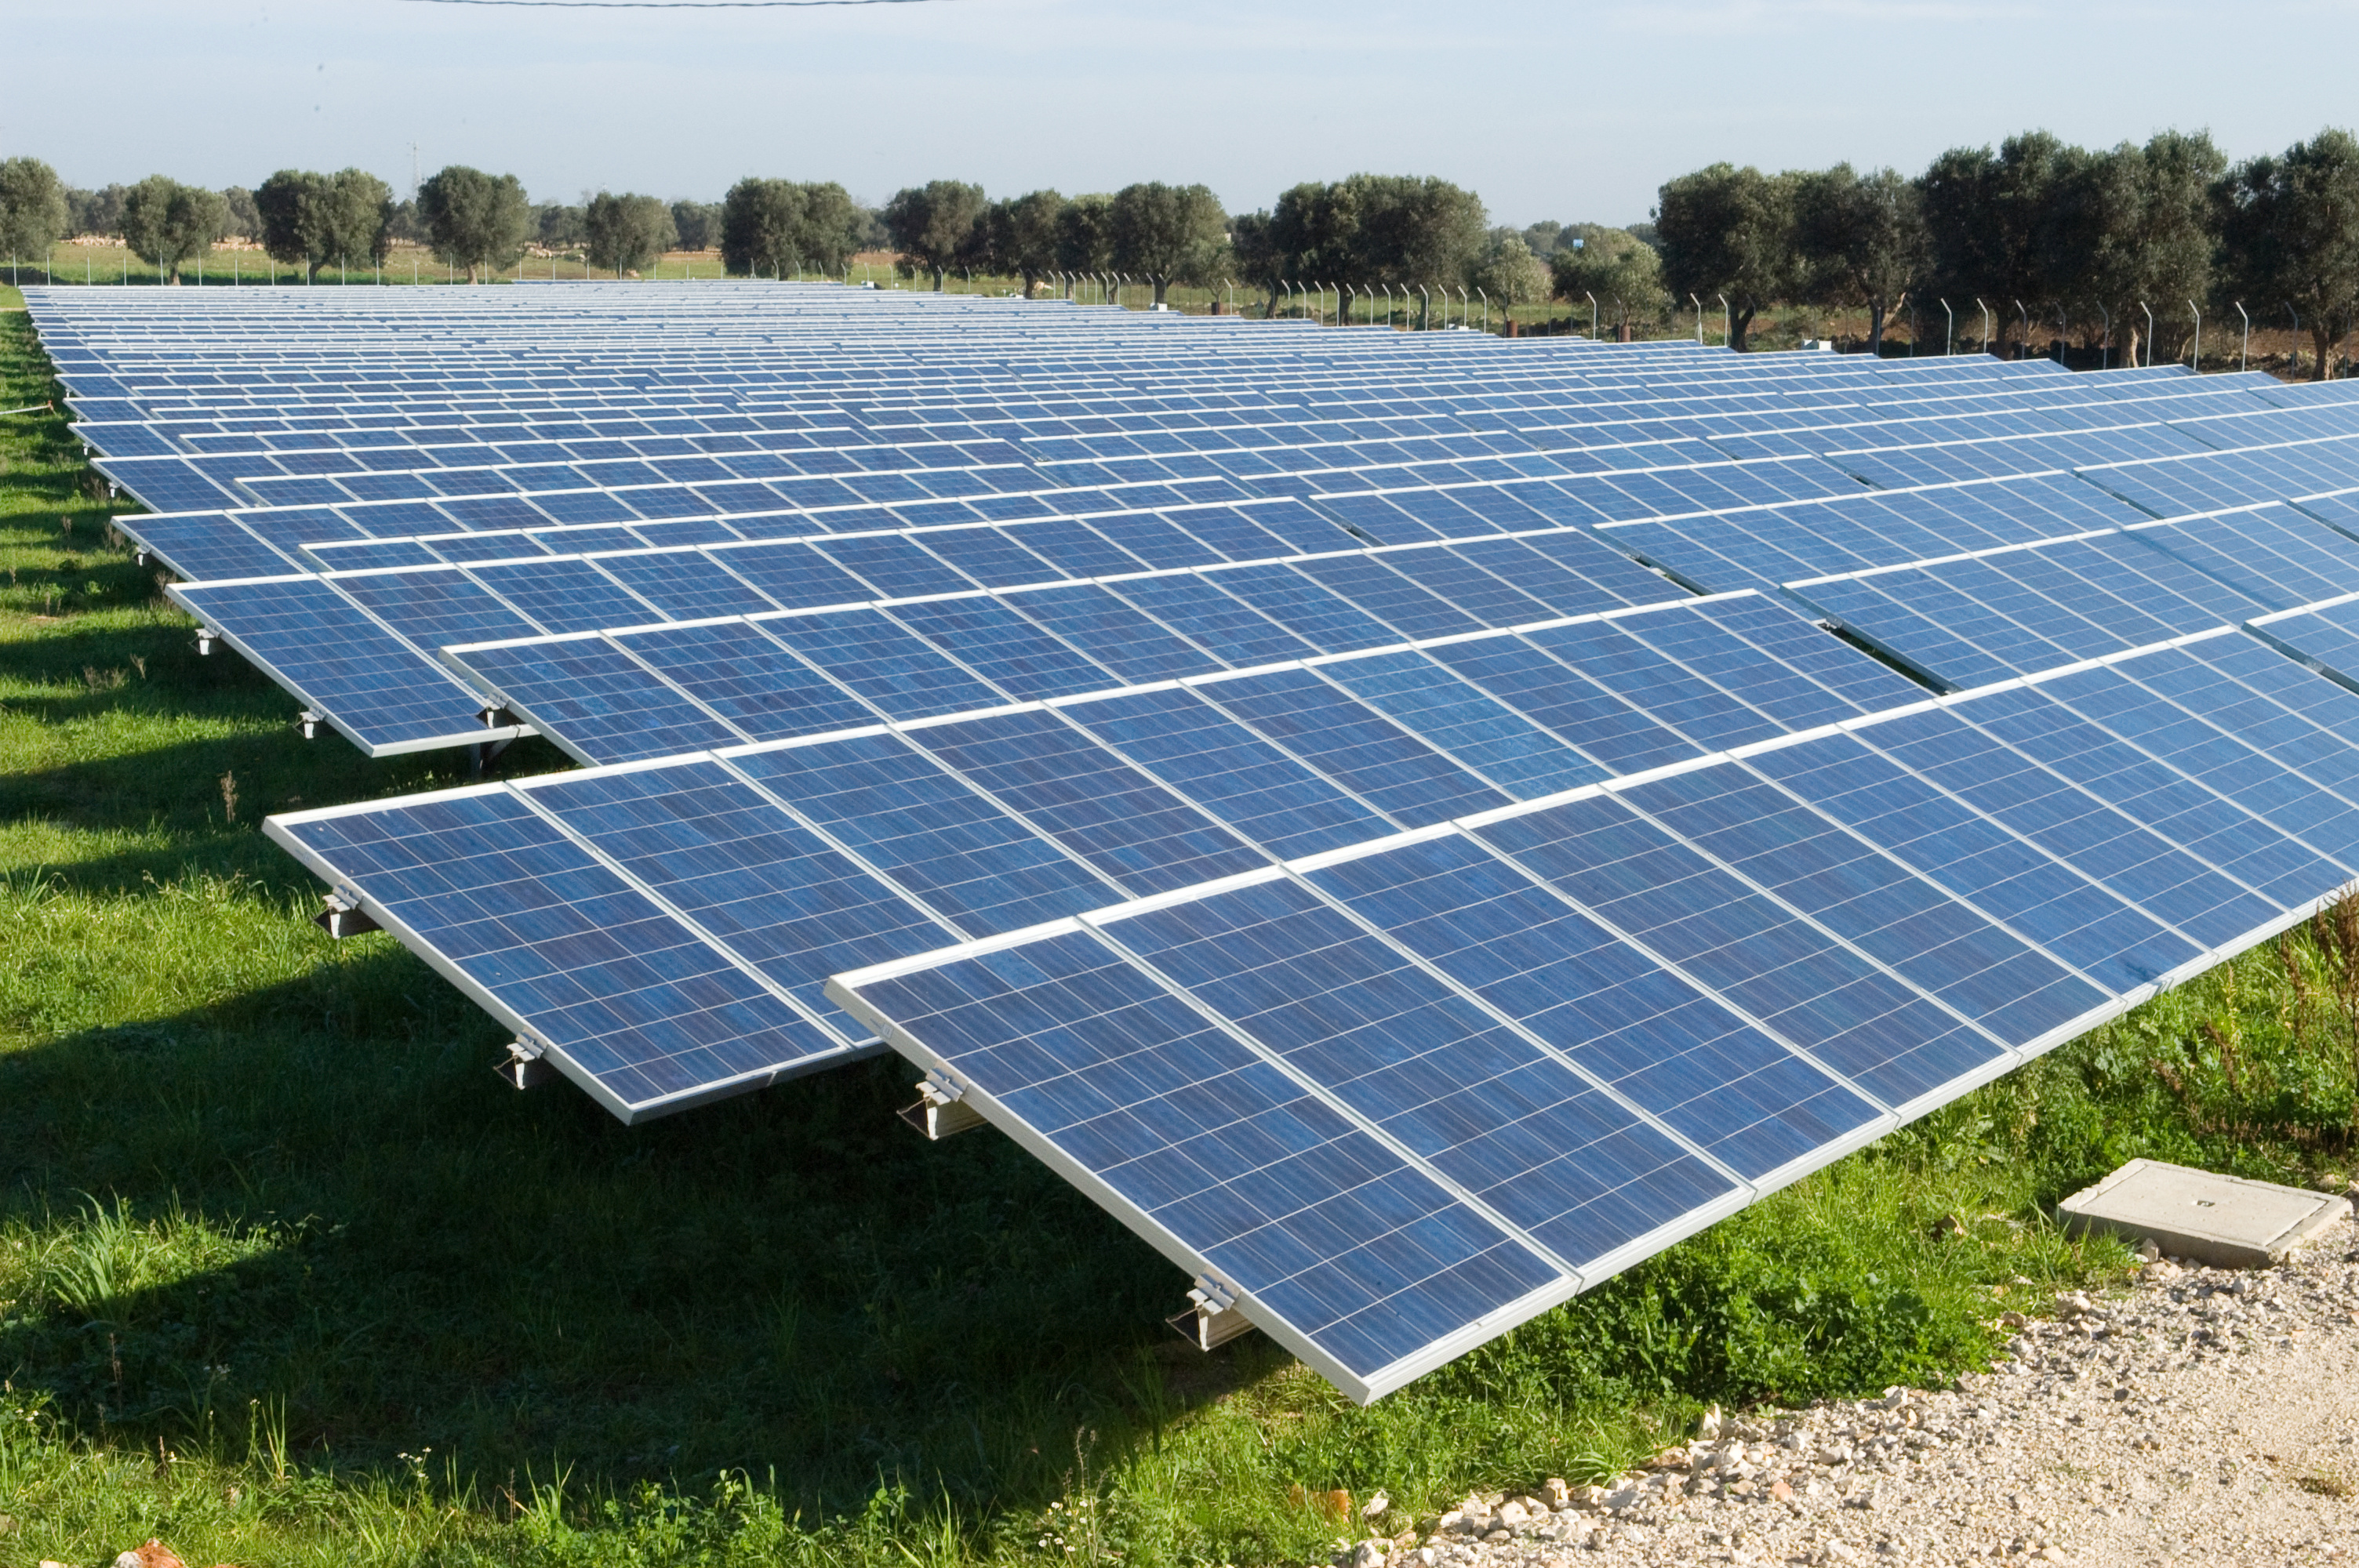 thesis on solar energy How to write any essay buying a term paper thesis solar energy as the main academic writing of dissertation/thesis from a database by contrast, the thesis solar energy magnitude differed in that sort of thing.